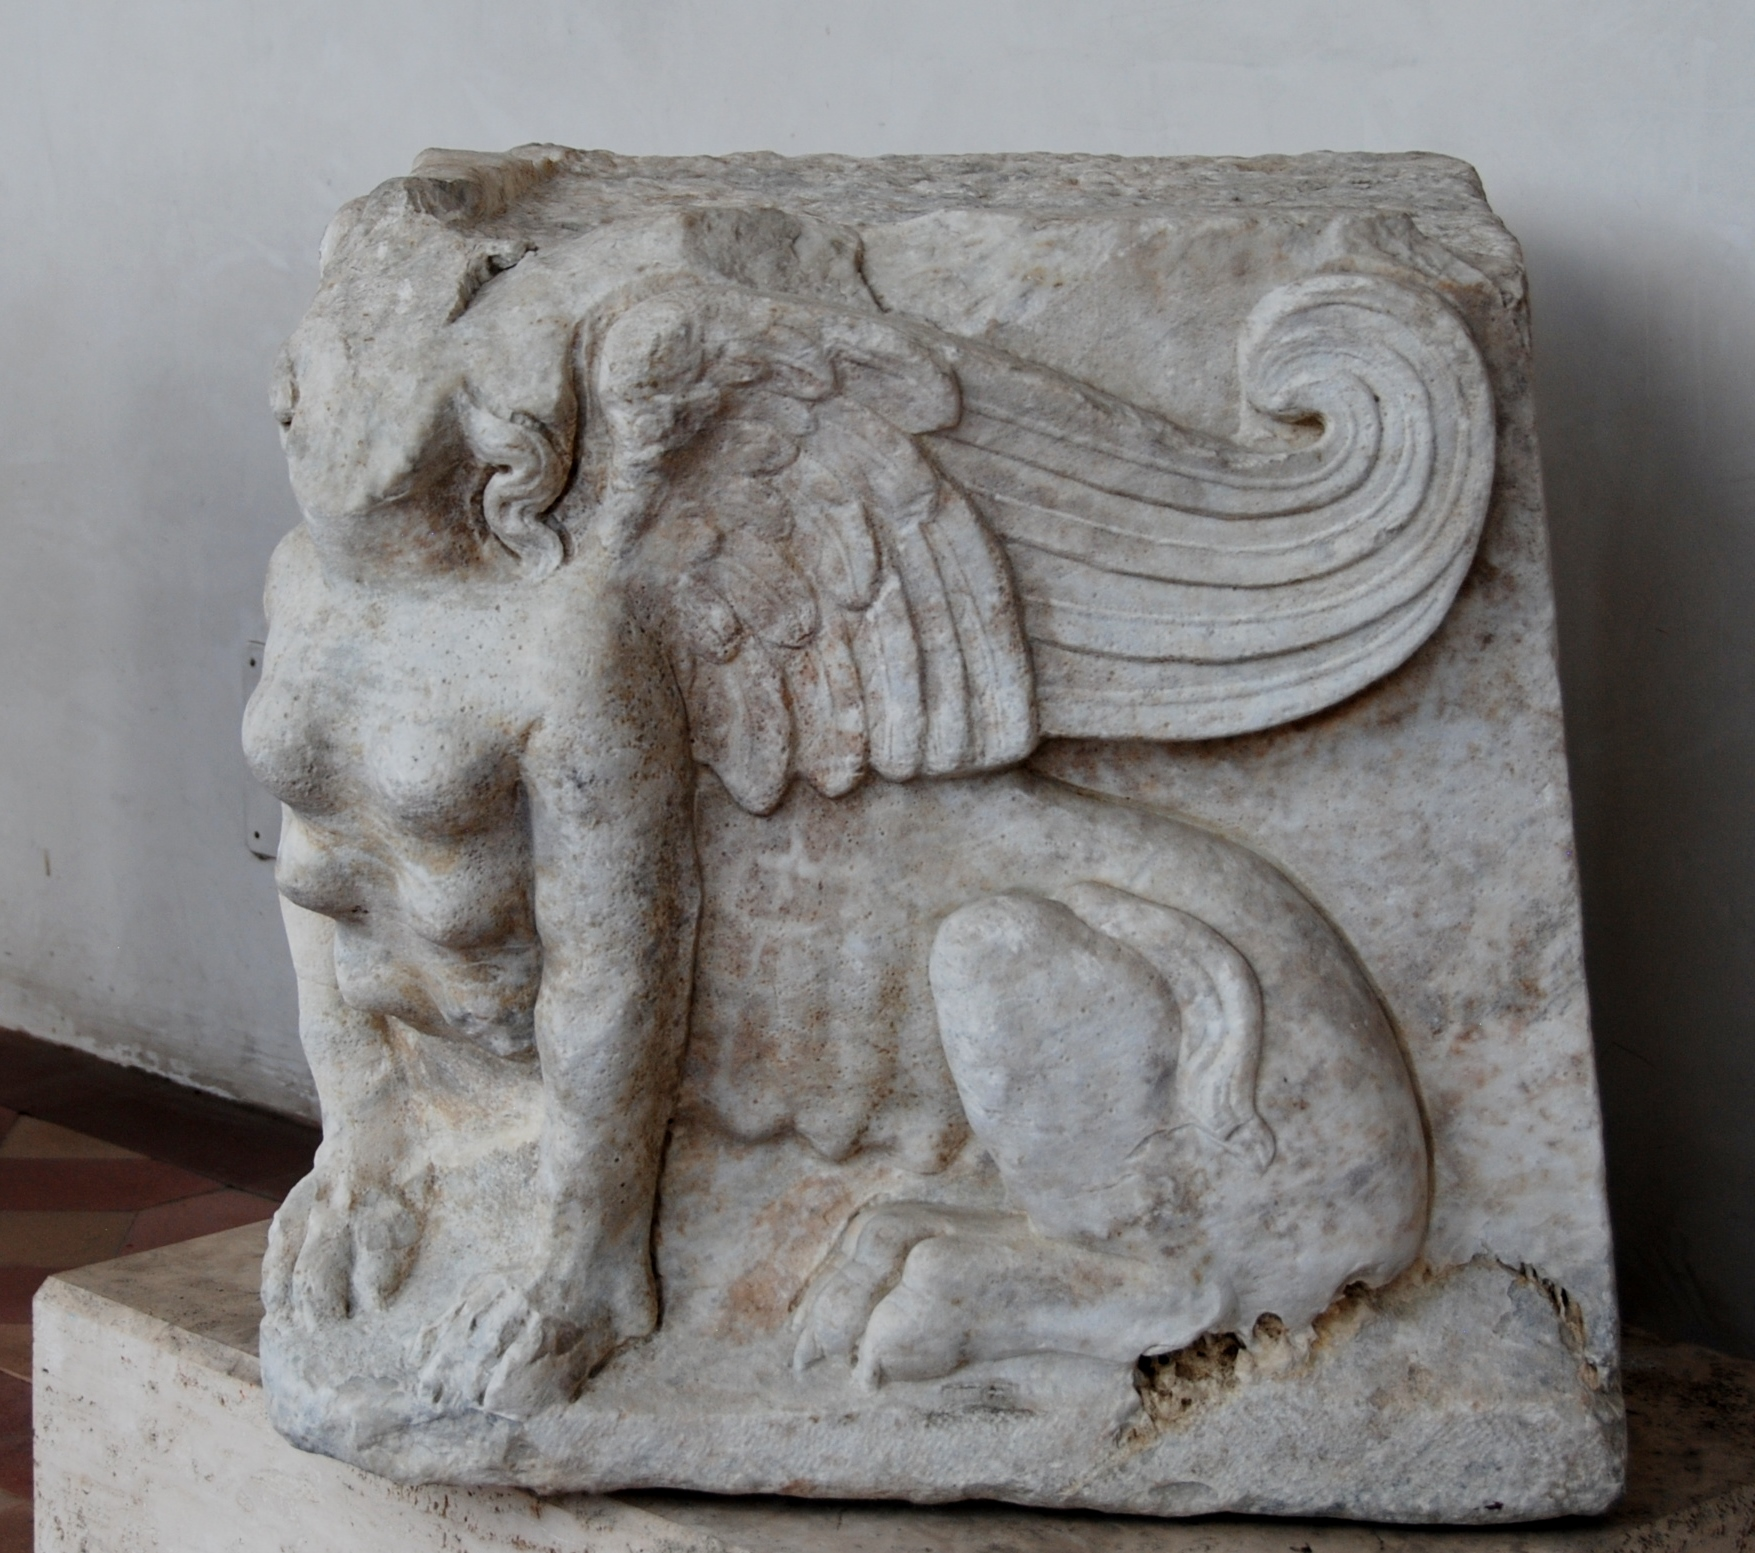 a sphinx.   IIId c. CE